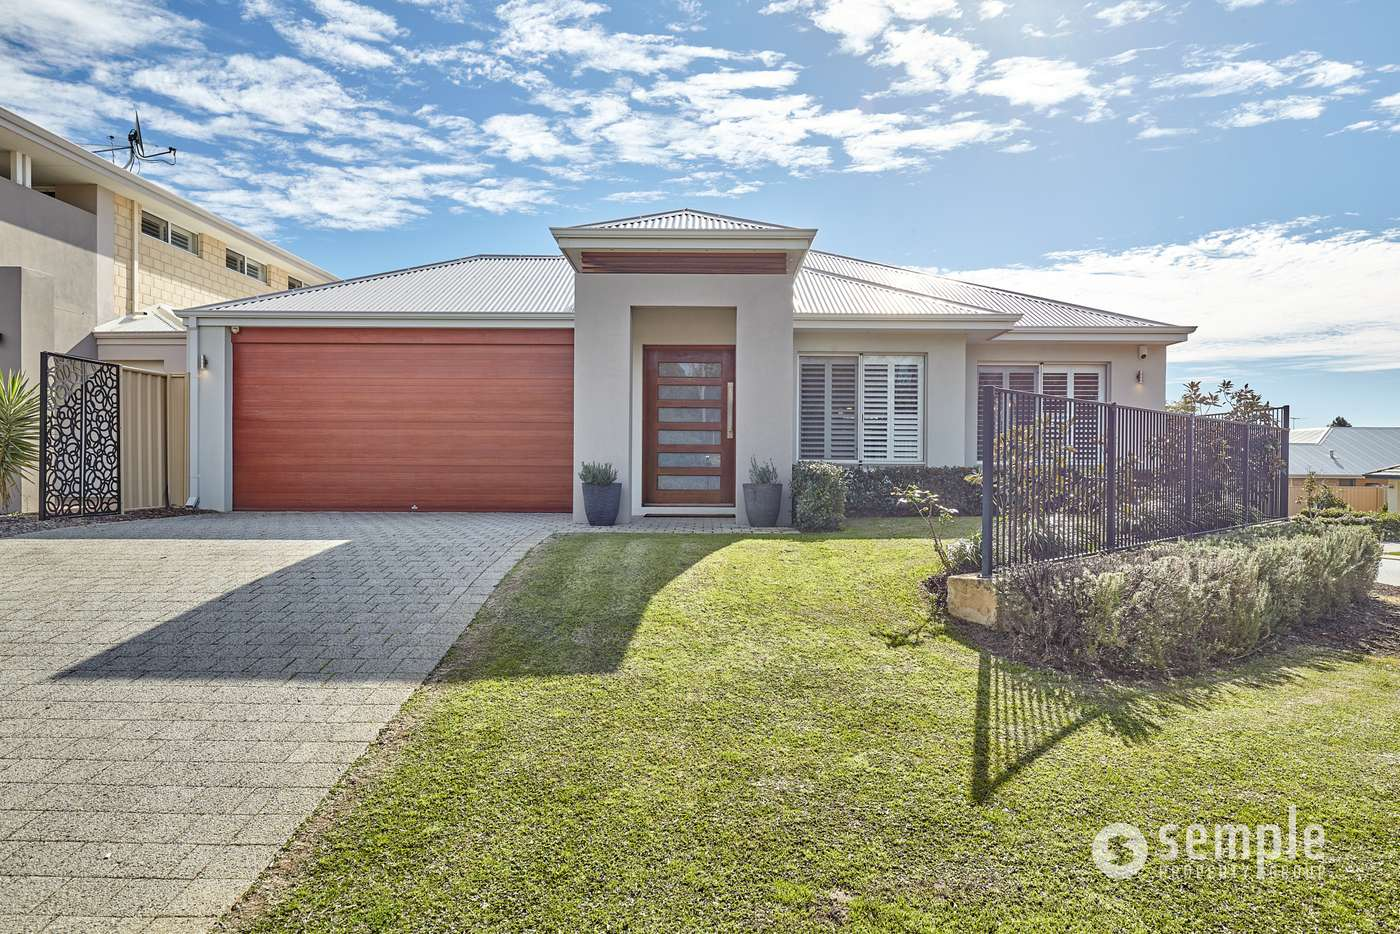 Main view of Homely house listing, 50 Mannikin Heights, Beeliar WA 6164